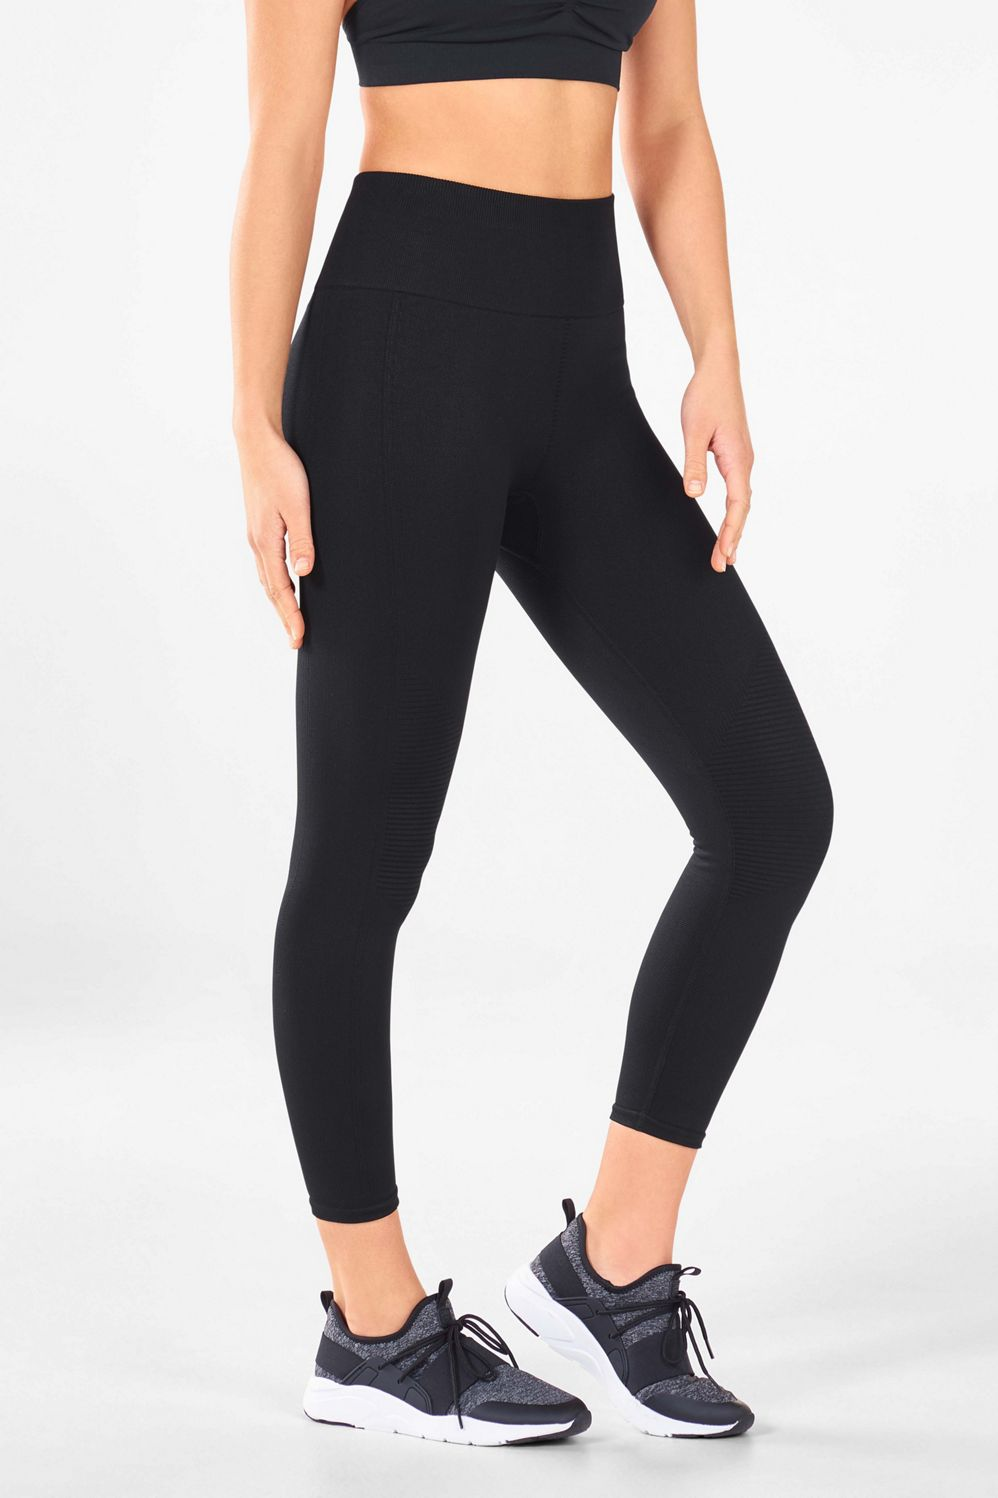 d7f556ccafc9f Seamless High-Waisted Statement 7/8 - Fabletics